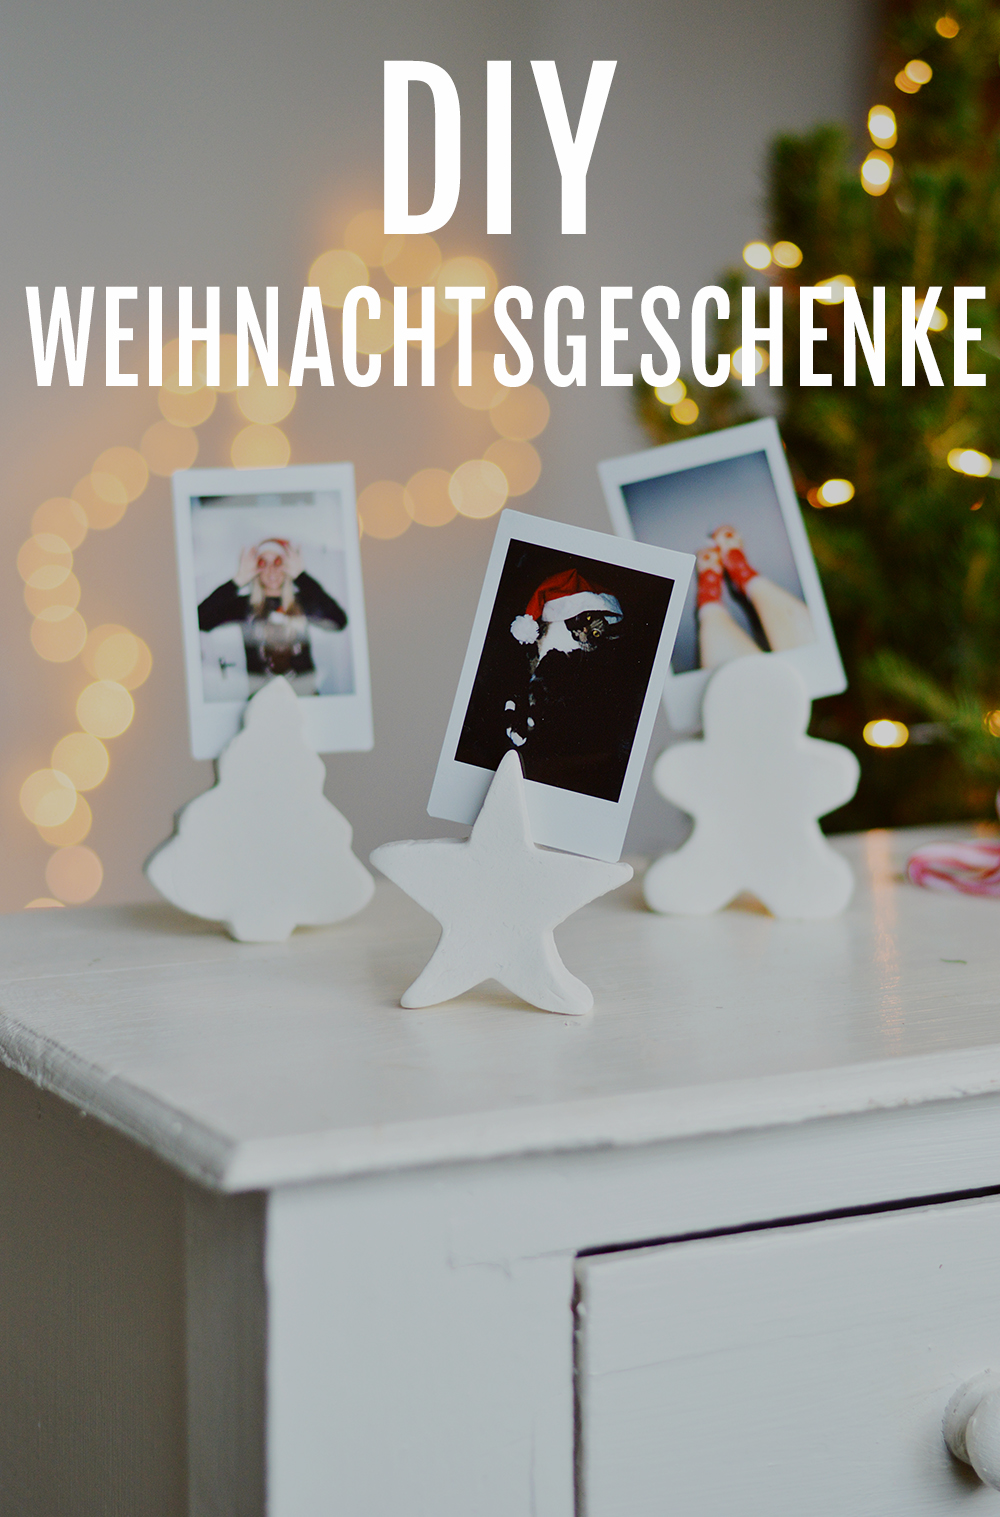 diy weihnachtsgeschenke freak shakes und fotohalter. Black Bedroom Furniture Sets. Home Design Ideas